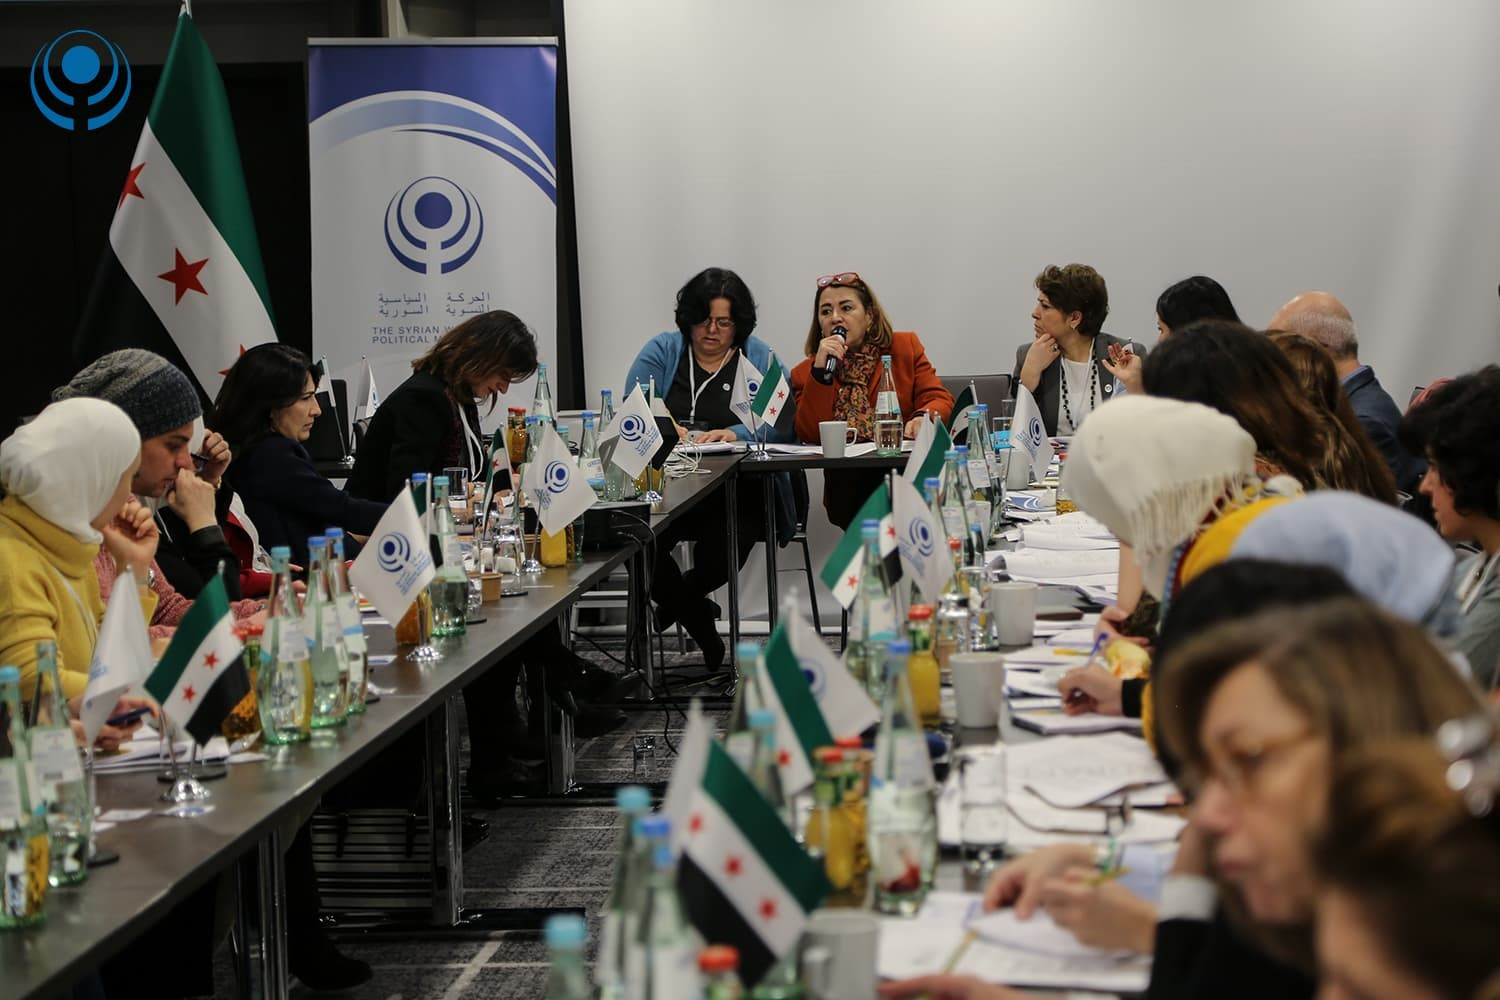 The first meeting of the general assembly of SWPM was held in Frankfort